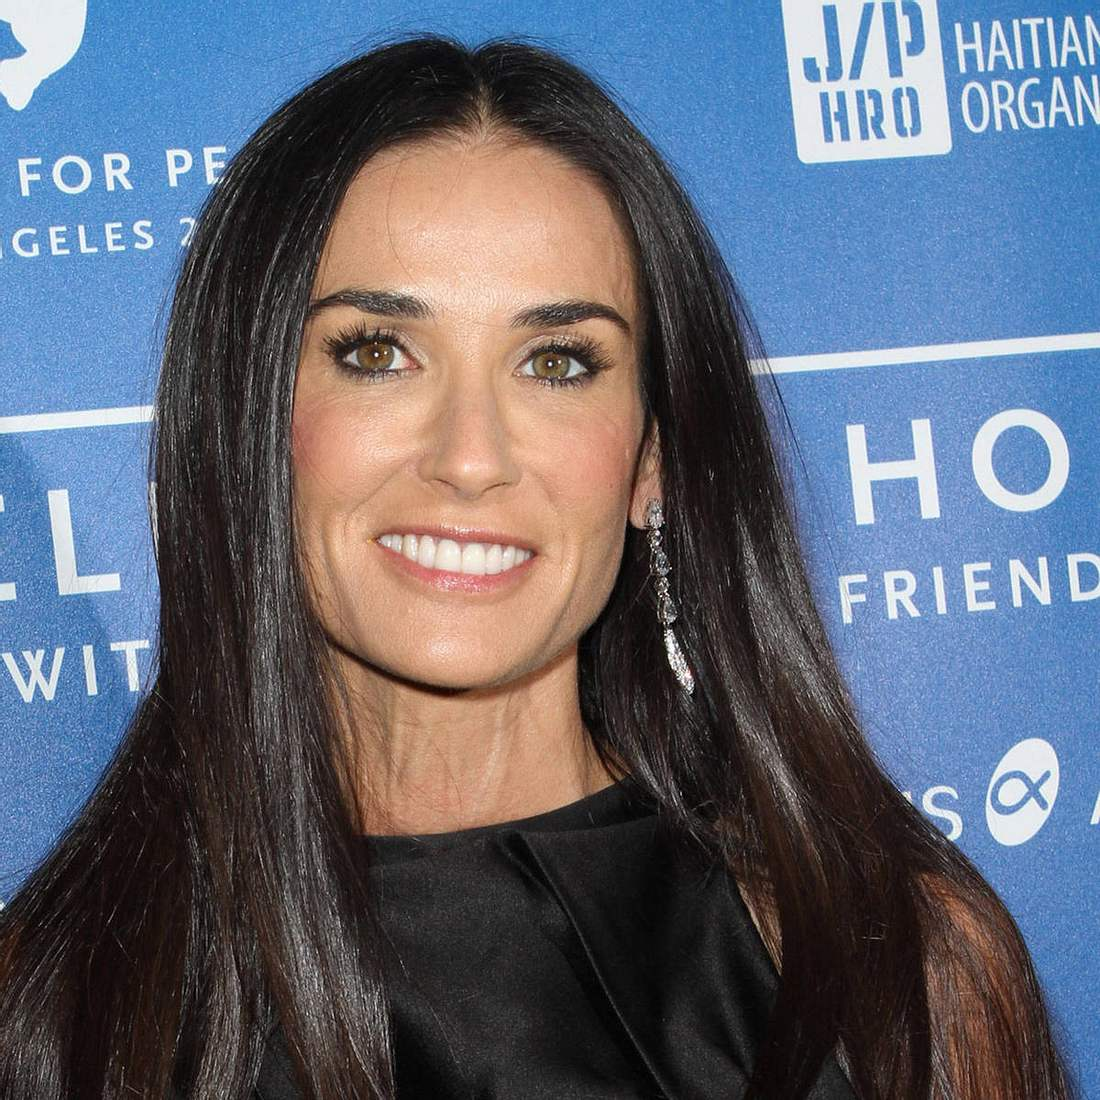 Demi Moore: Wilde Party mit Lenny Kravitz